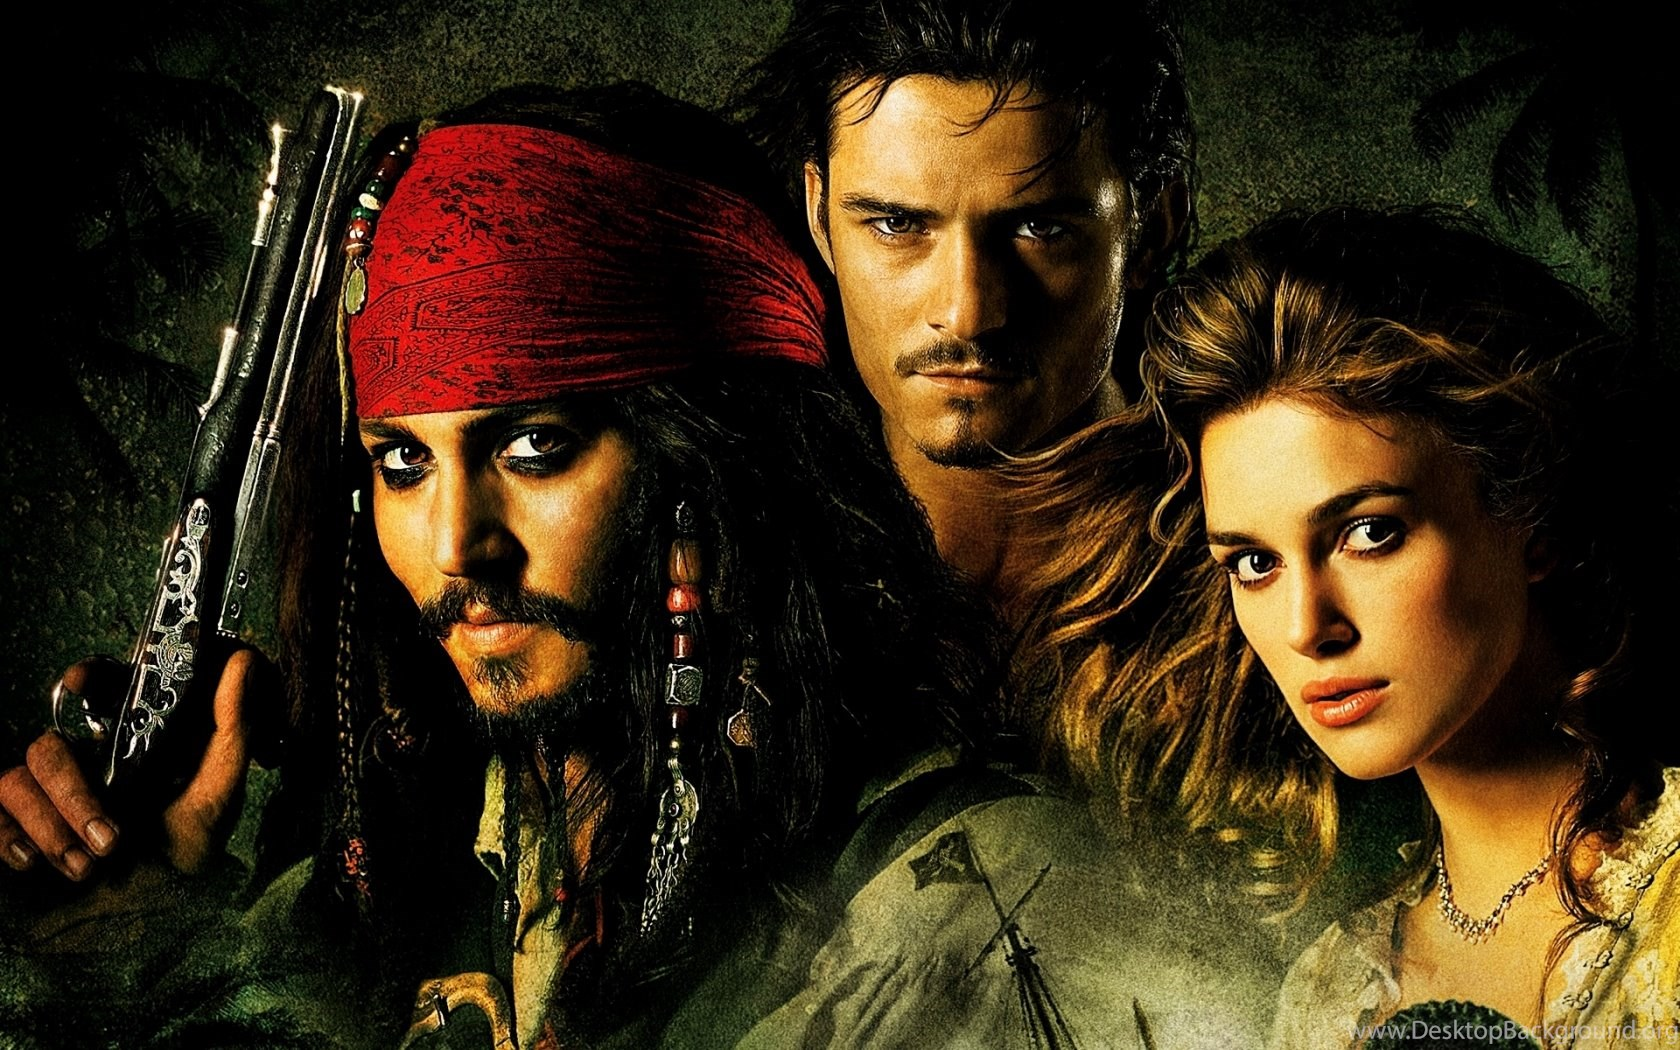 The Pirates Of The Caribbean Wallpaper Movies Hd Widescreen